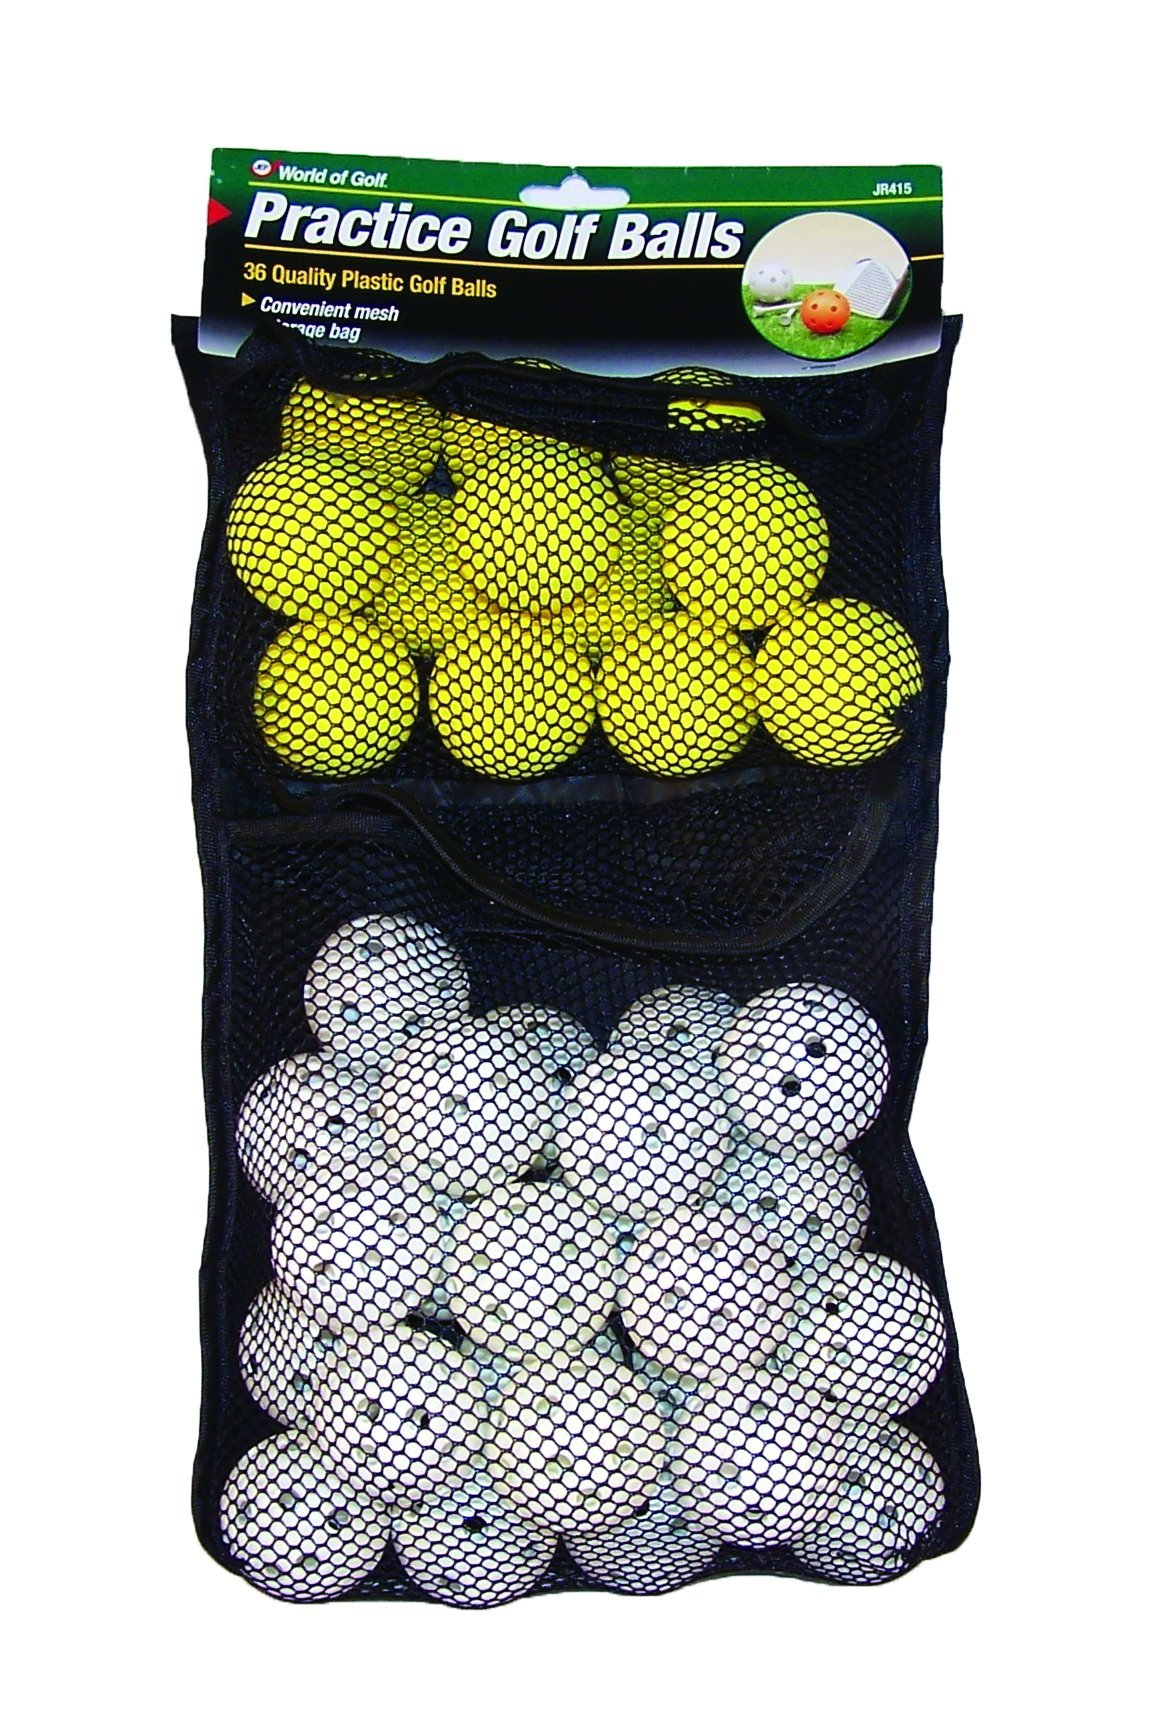 Jef World of Golf Gifts and Gallery, Inc. Foam/Whille Ball Assortment (Multicolor) by JEF WORLD OF GOLF (Image #1)